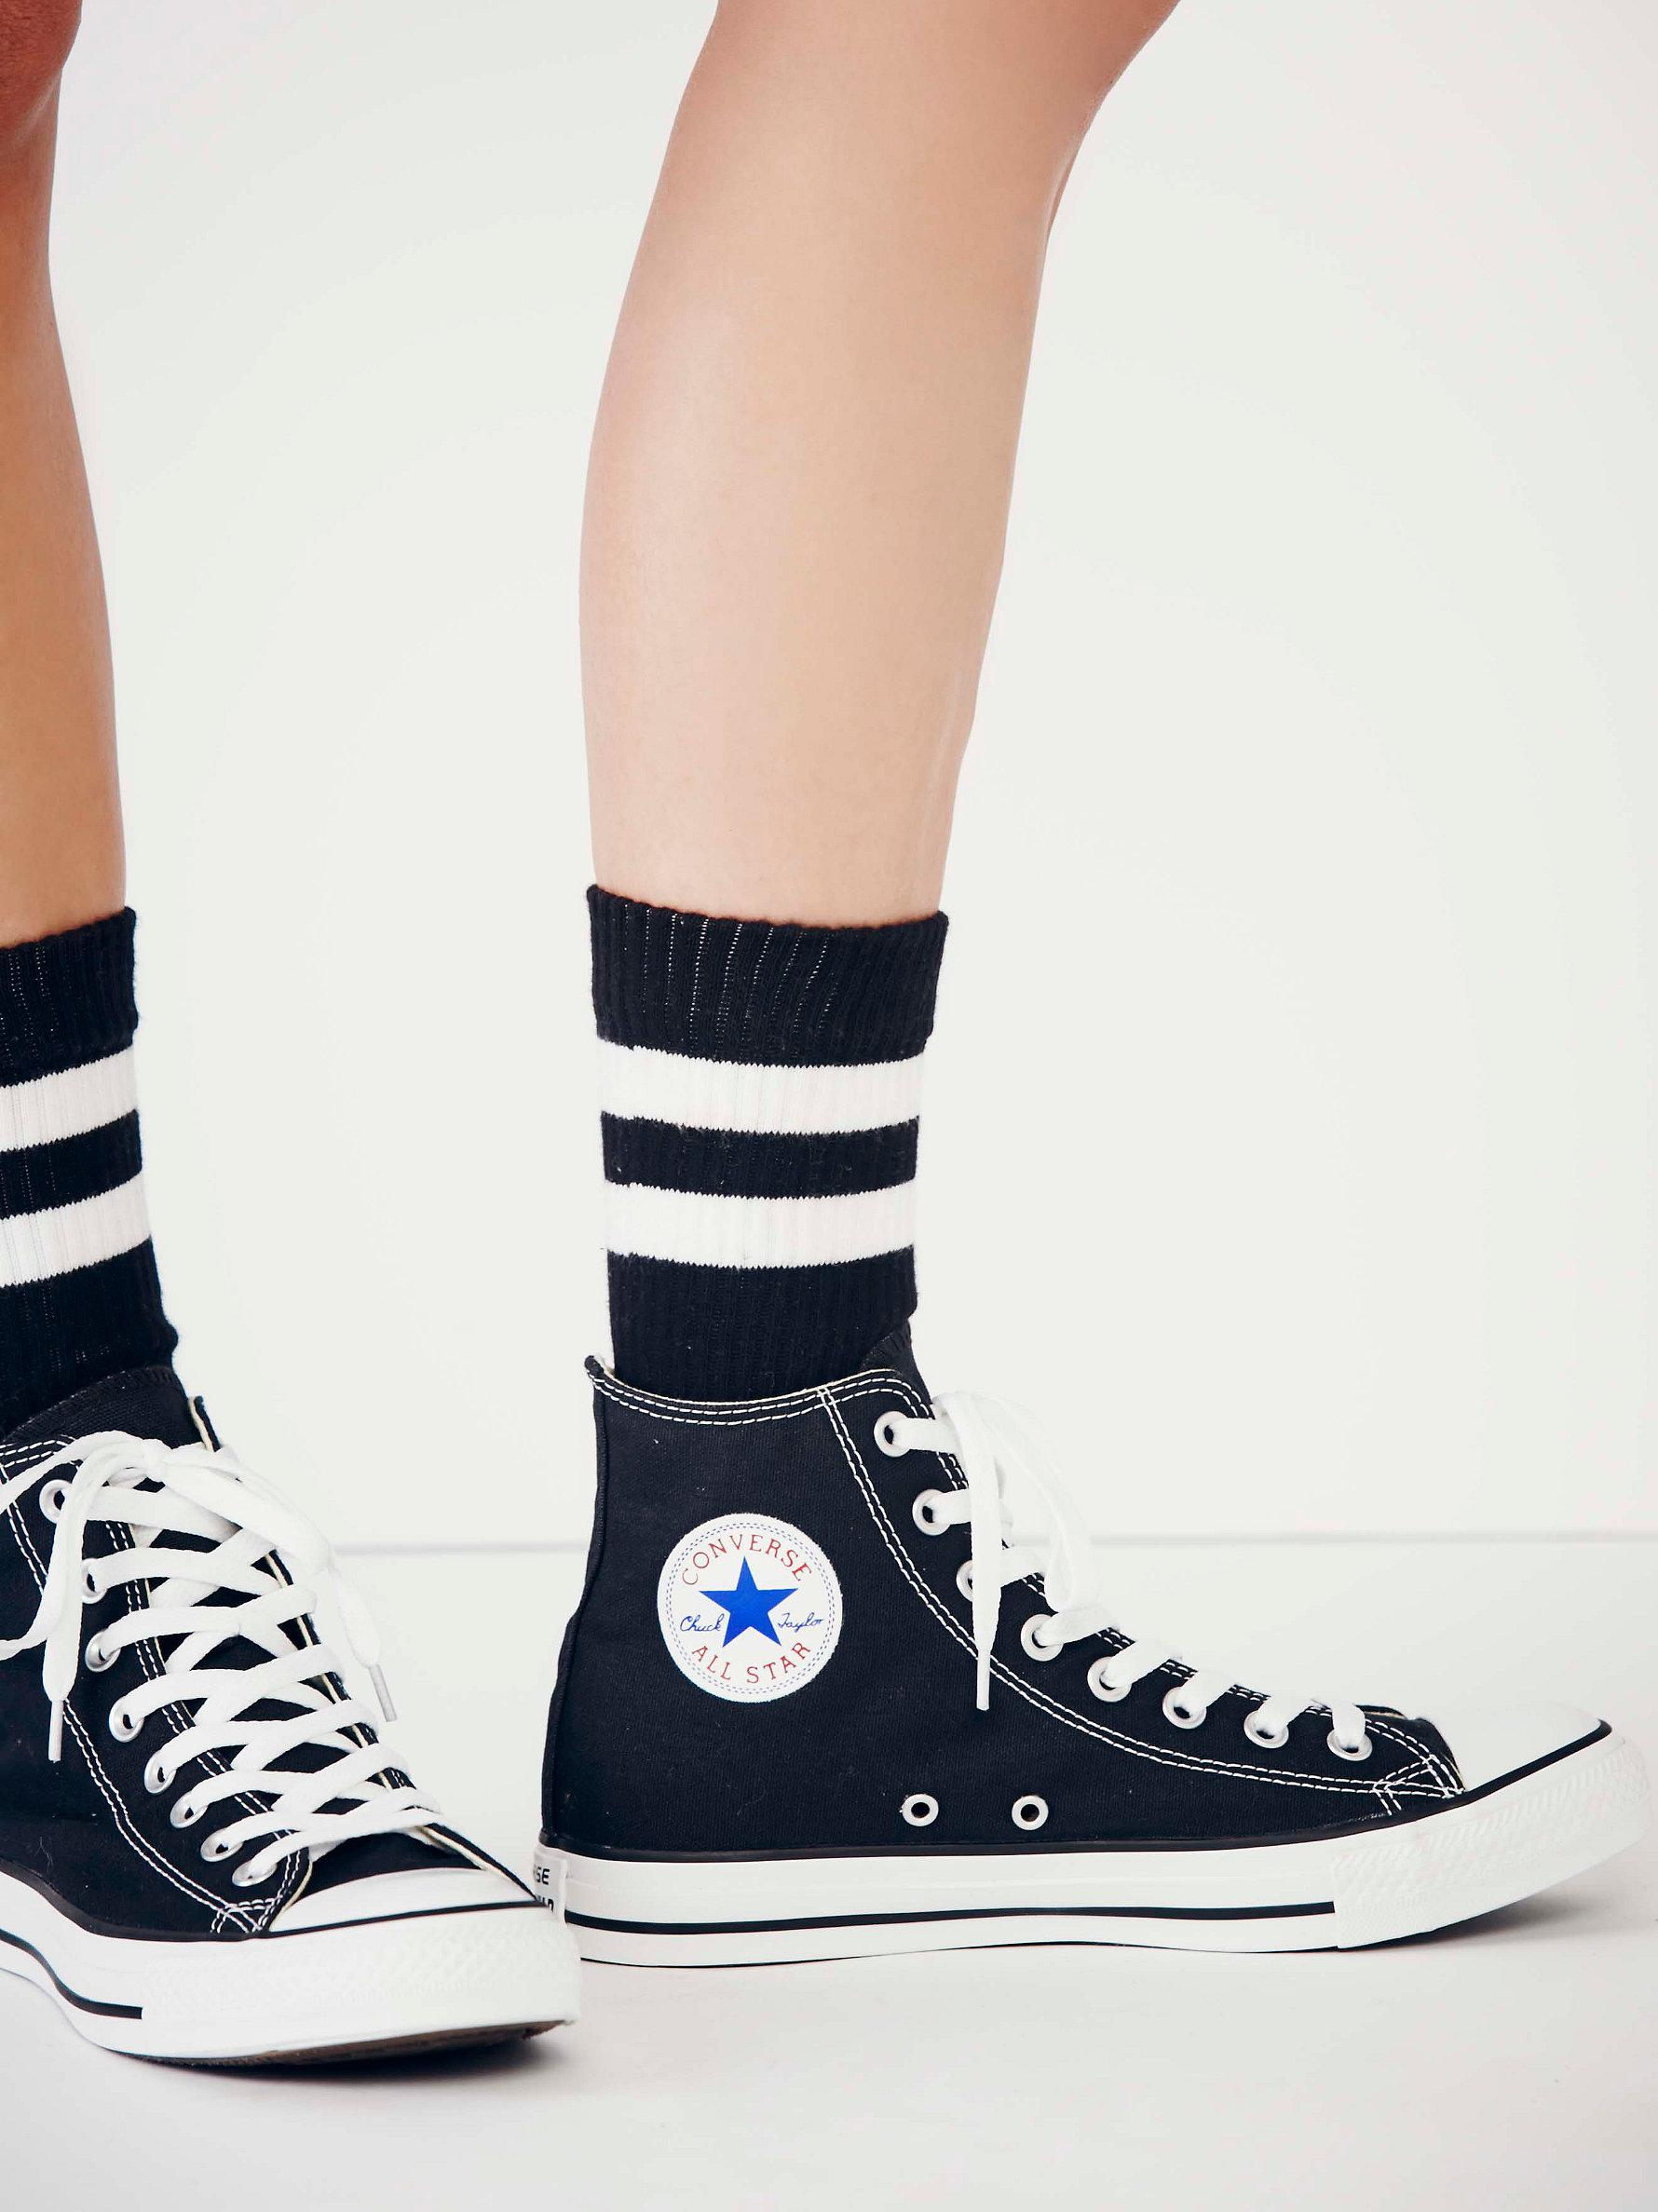 free shipping enjoy outlet from china Charlie Hi Top Converse Sneaker for sale official site prCvY